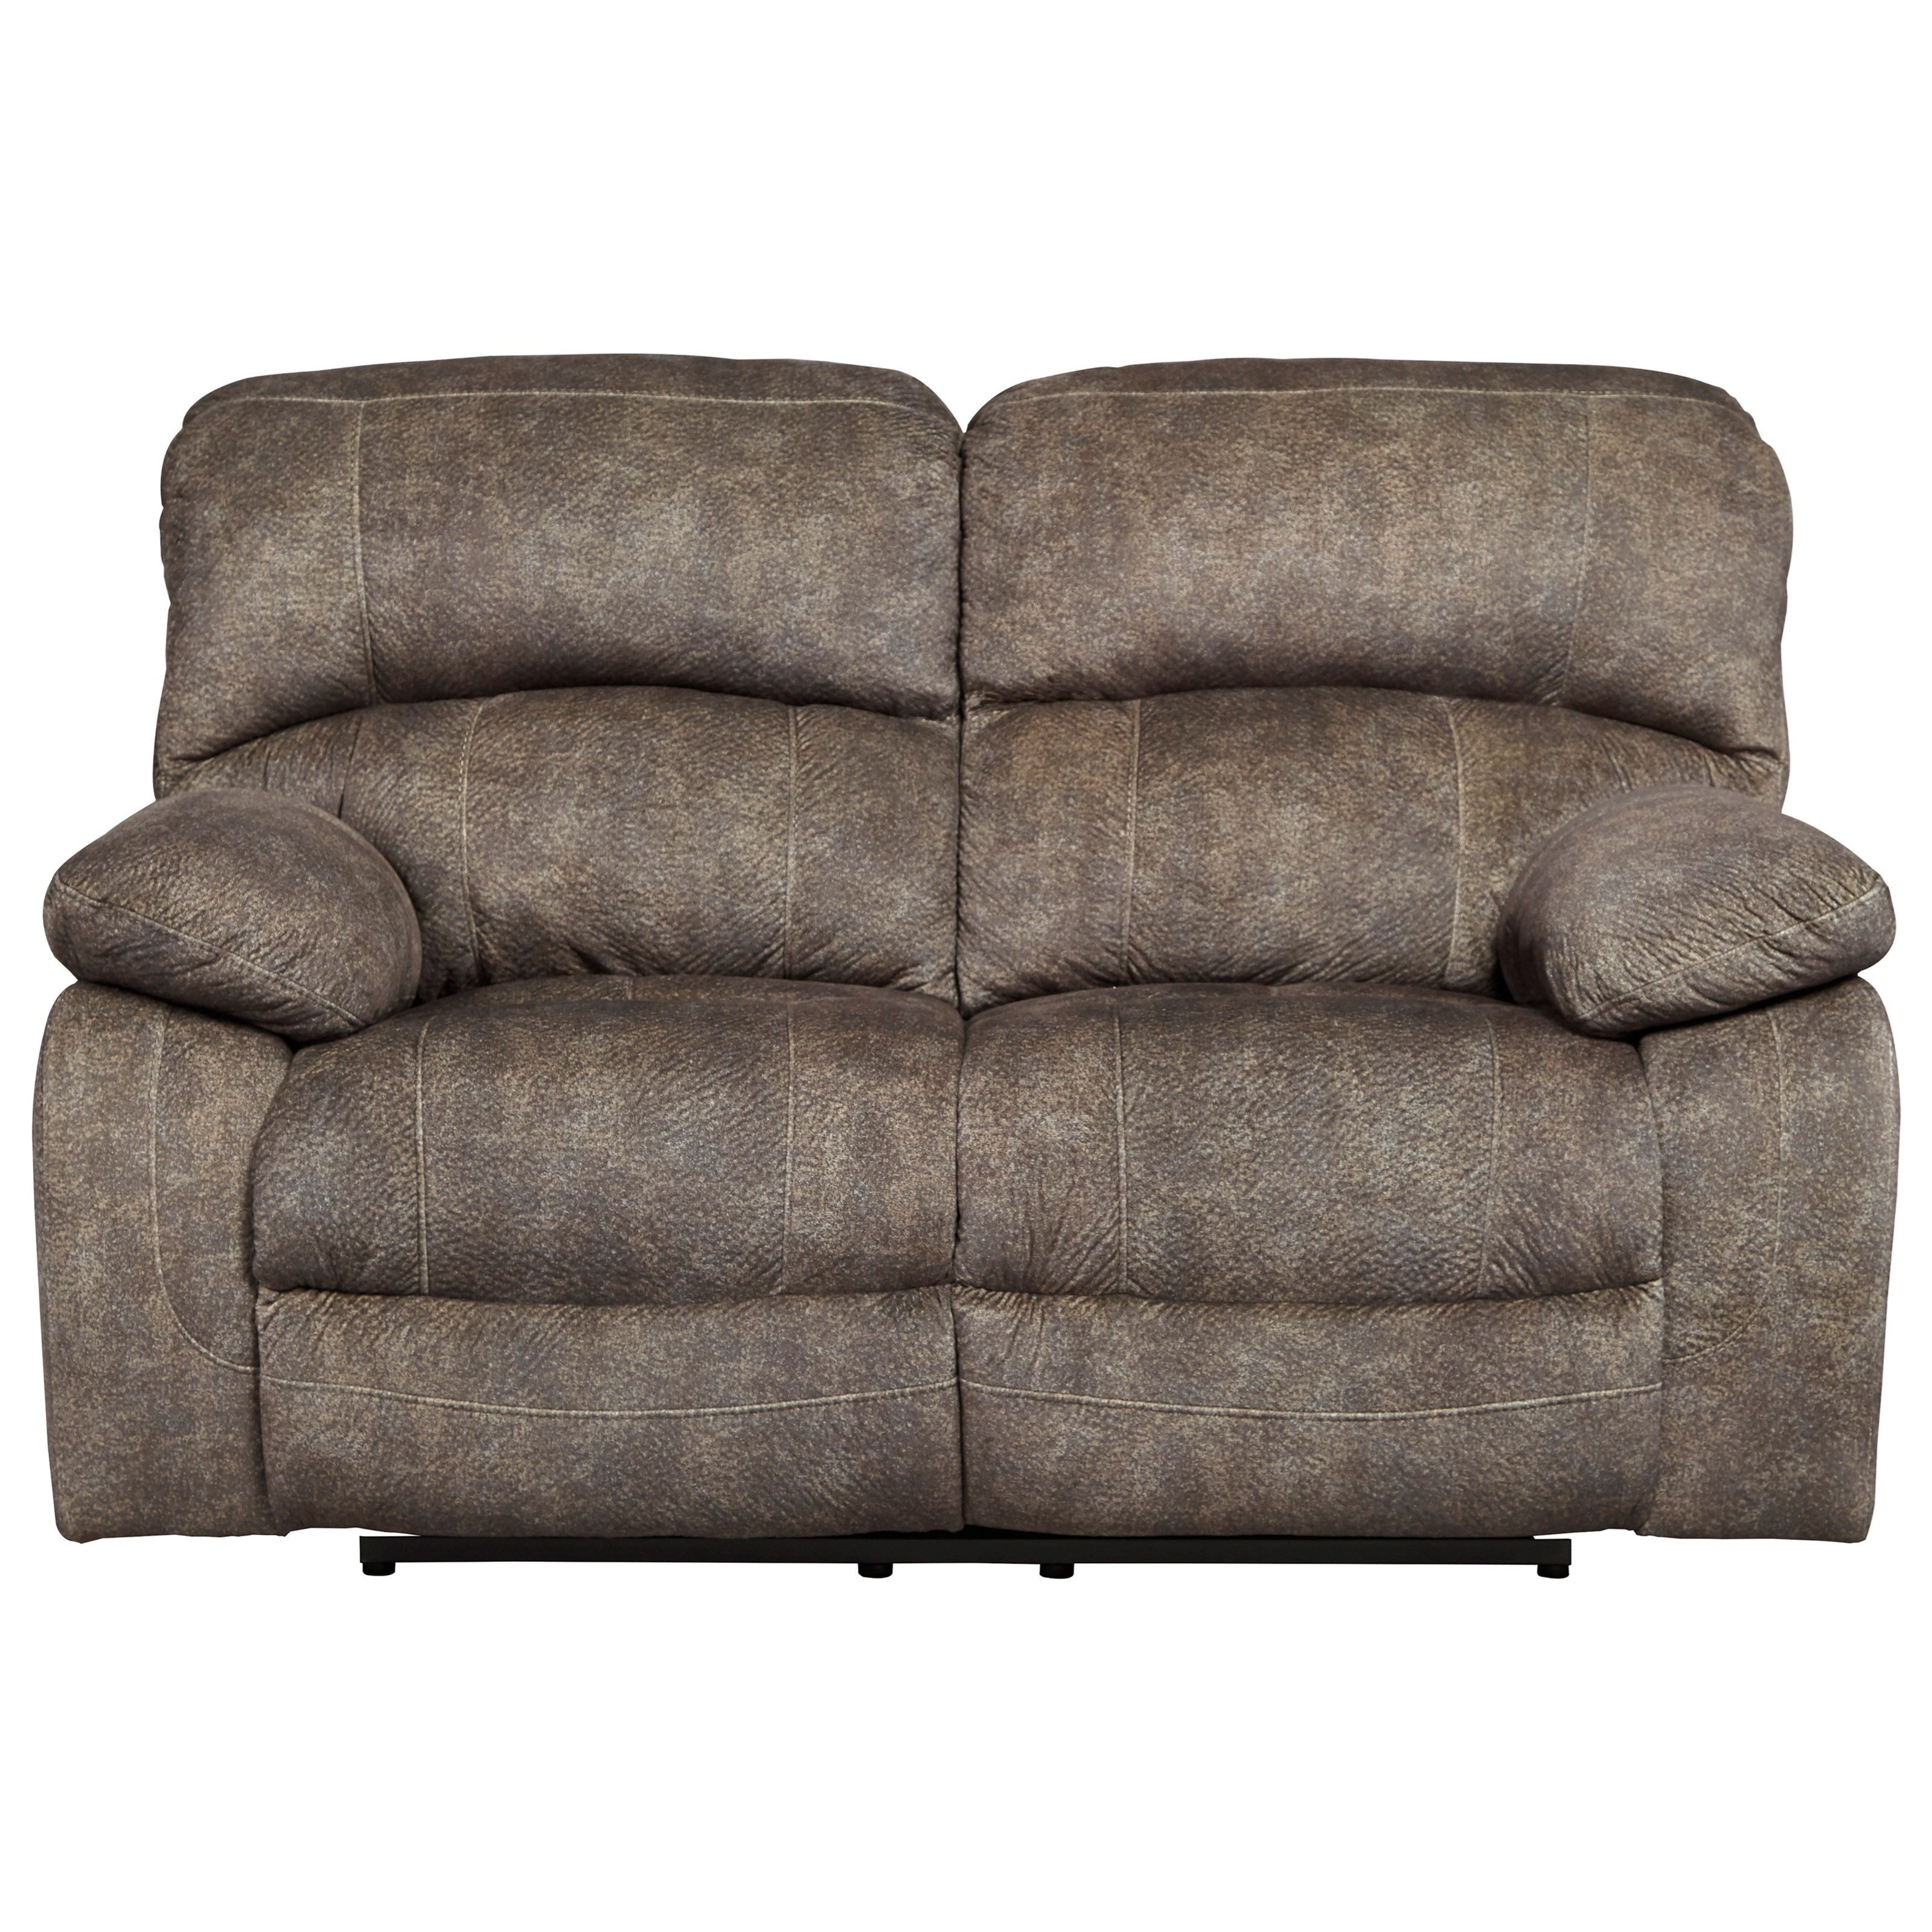 Cannelton Power Reclining Loveseat by Signature Design by Ashley at Lapeer Furniture & Mattress Center